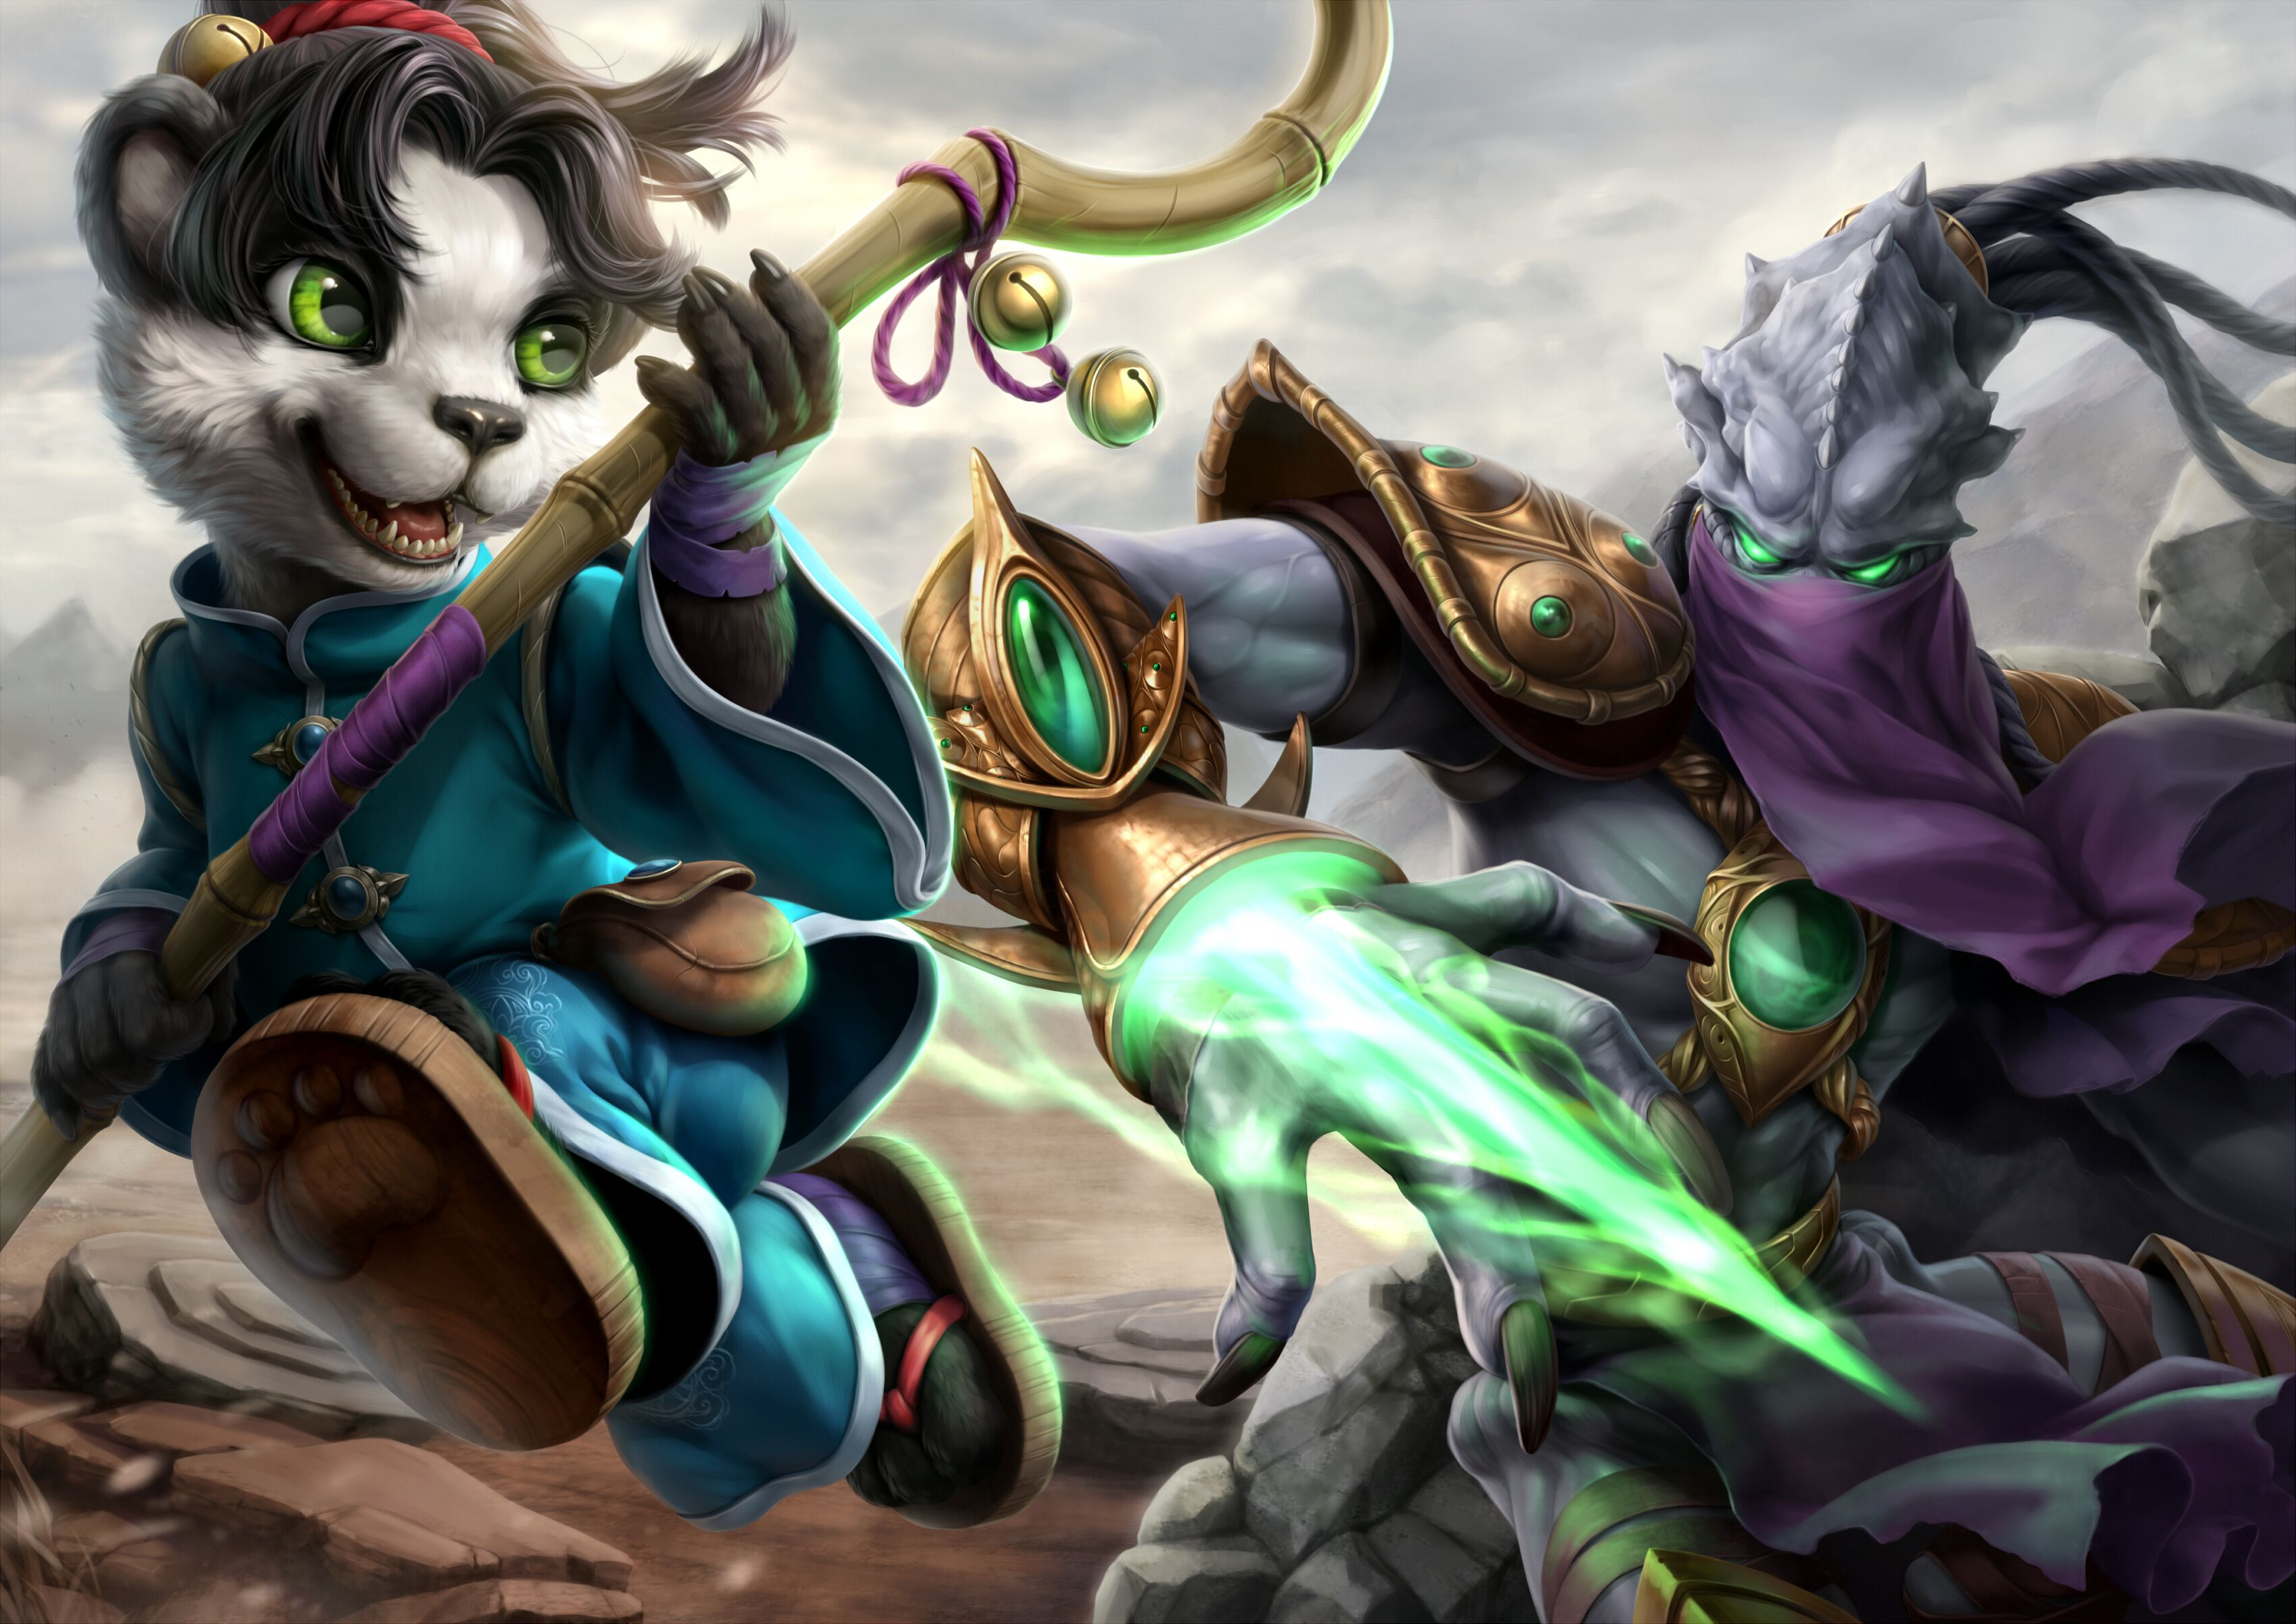 Picture Wow Starcraft Heroes Of The Storm Pandas Li Li Hots Zeratul Fantasy Games Animals 3394x2400 World Of W Heroes Of The Storm Favorite Character Starcraft